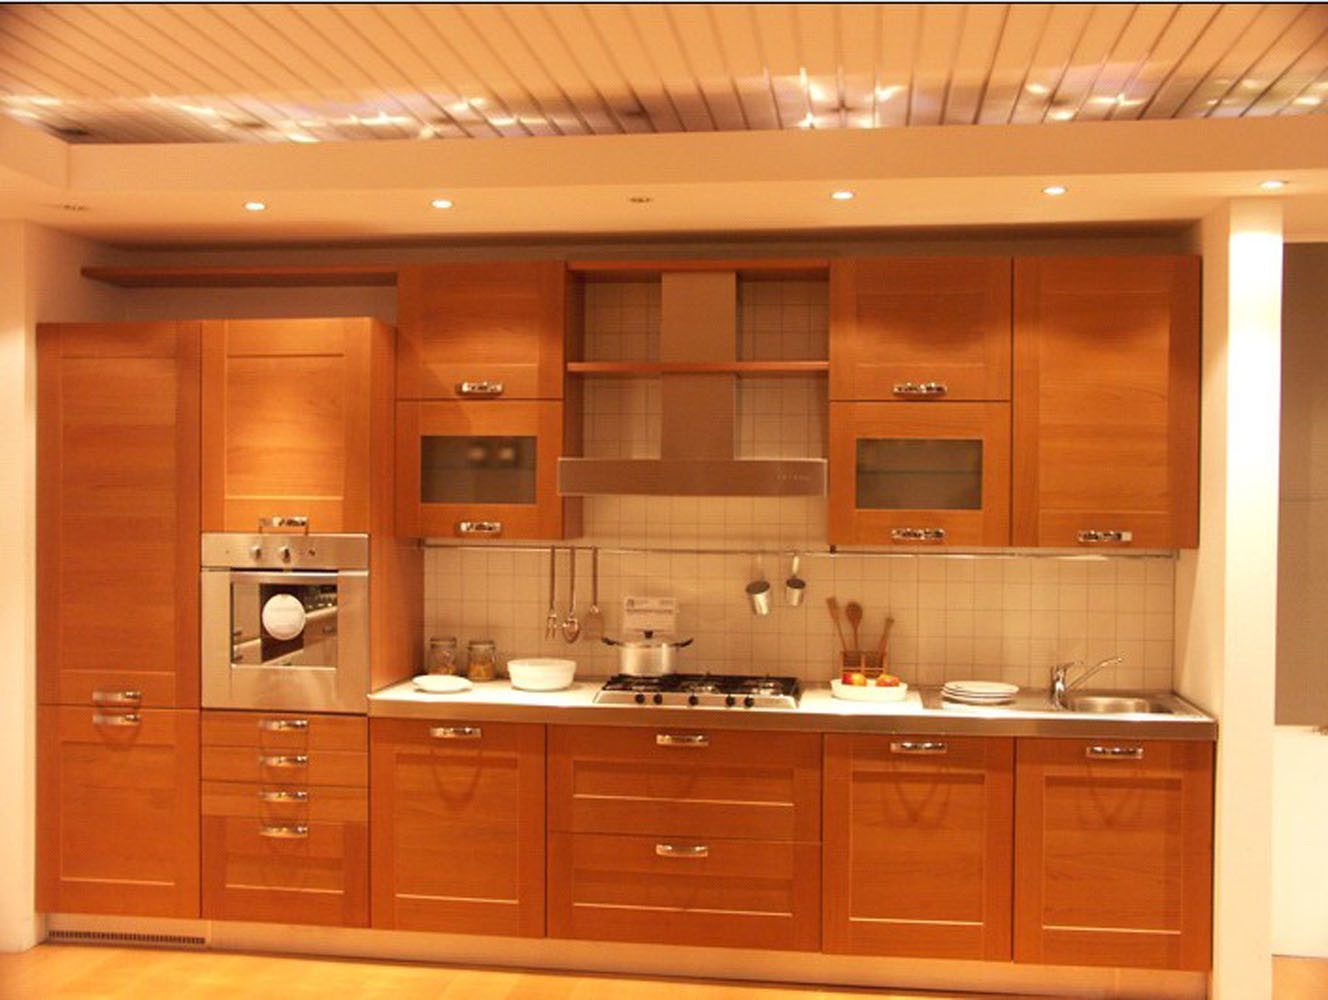 Shaker style kitchen afreakatheart for Kitchen cabinets design